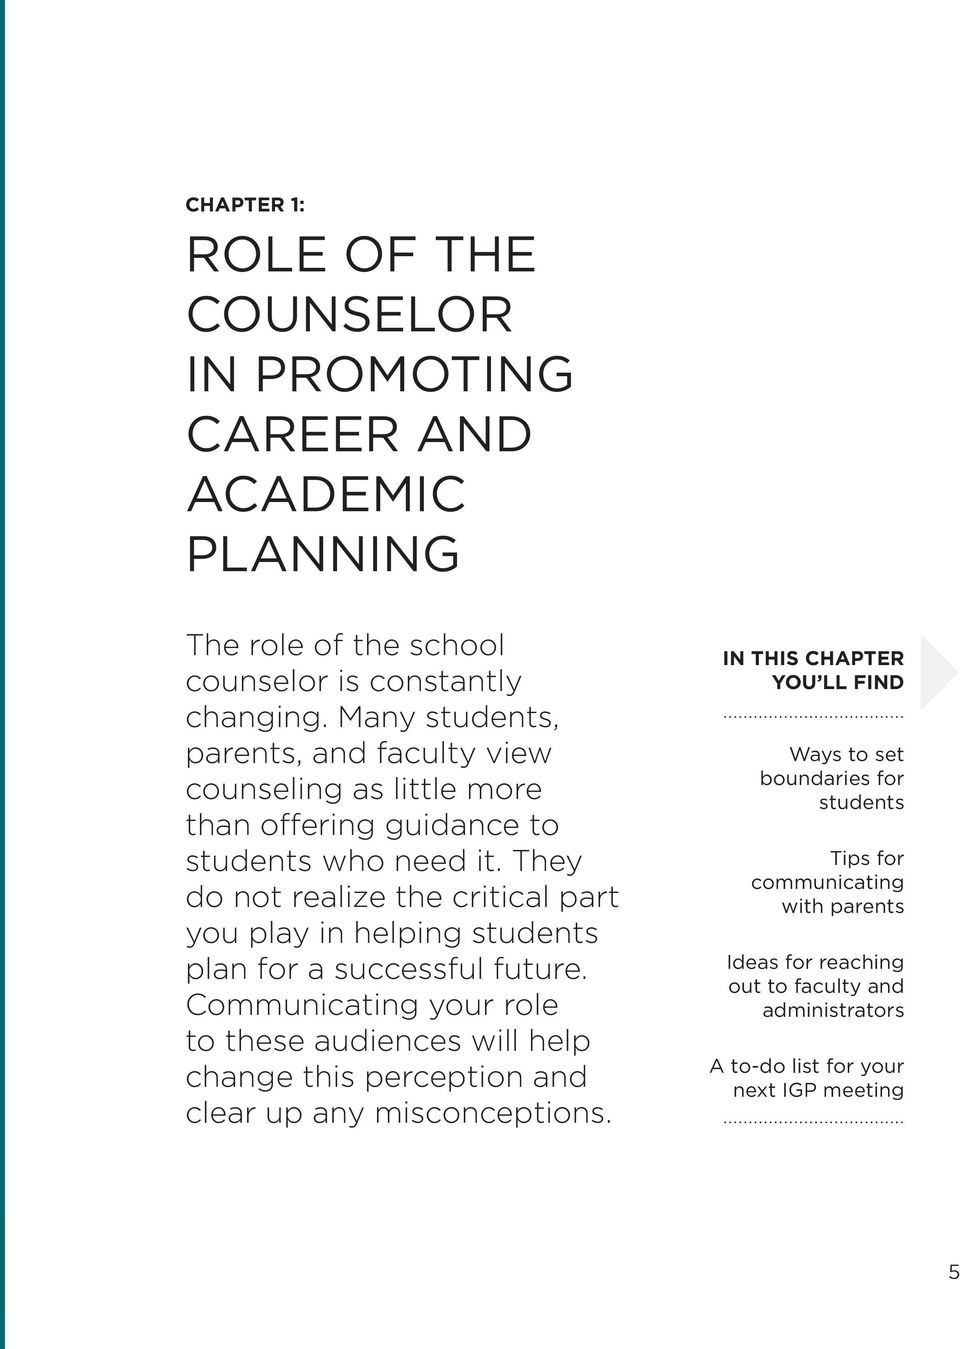 They do not realize the critical part you play in helping students plan for a successful future.